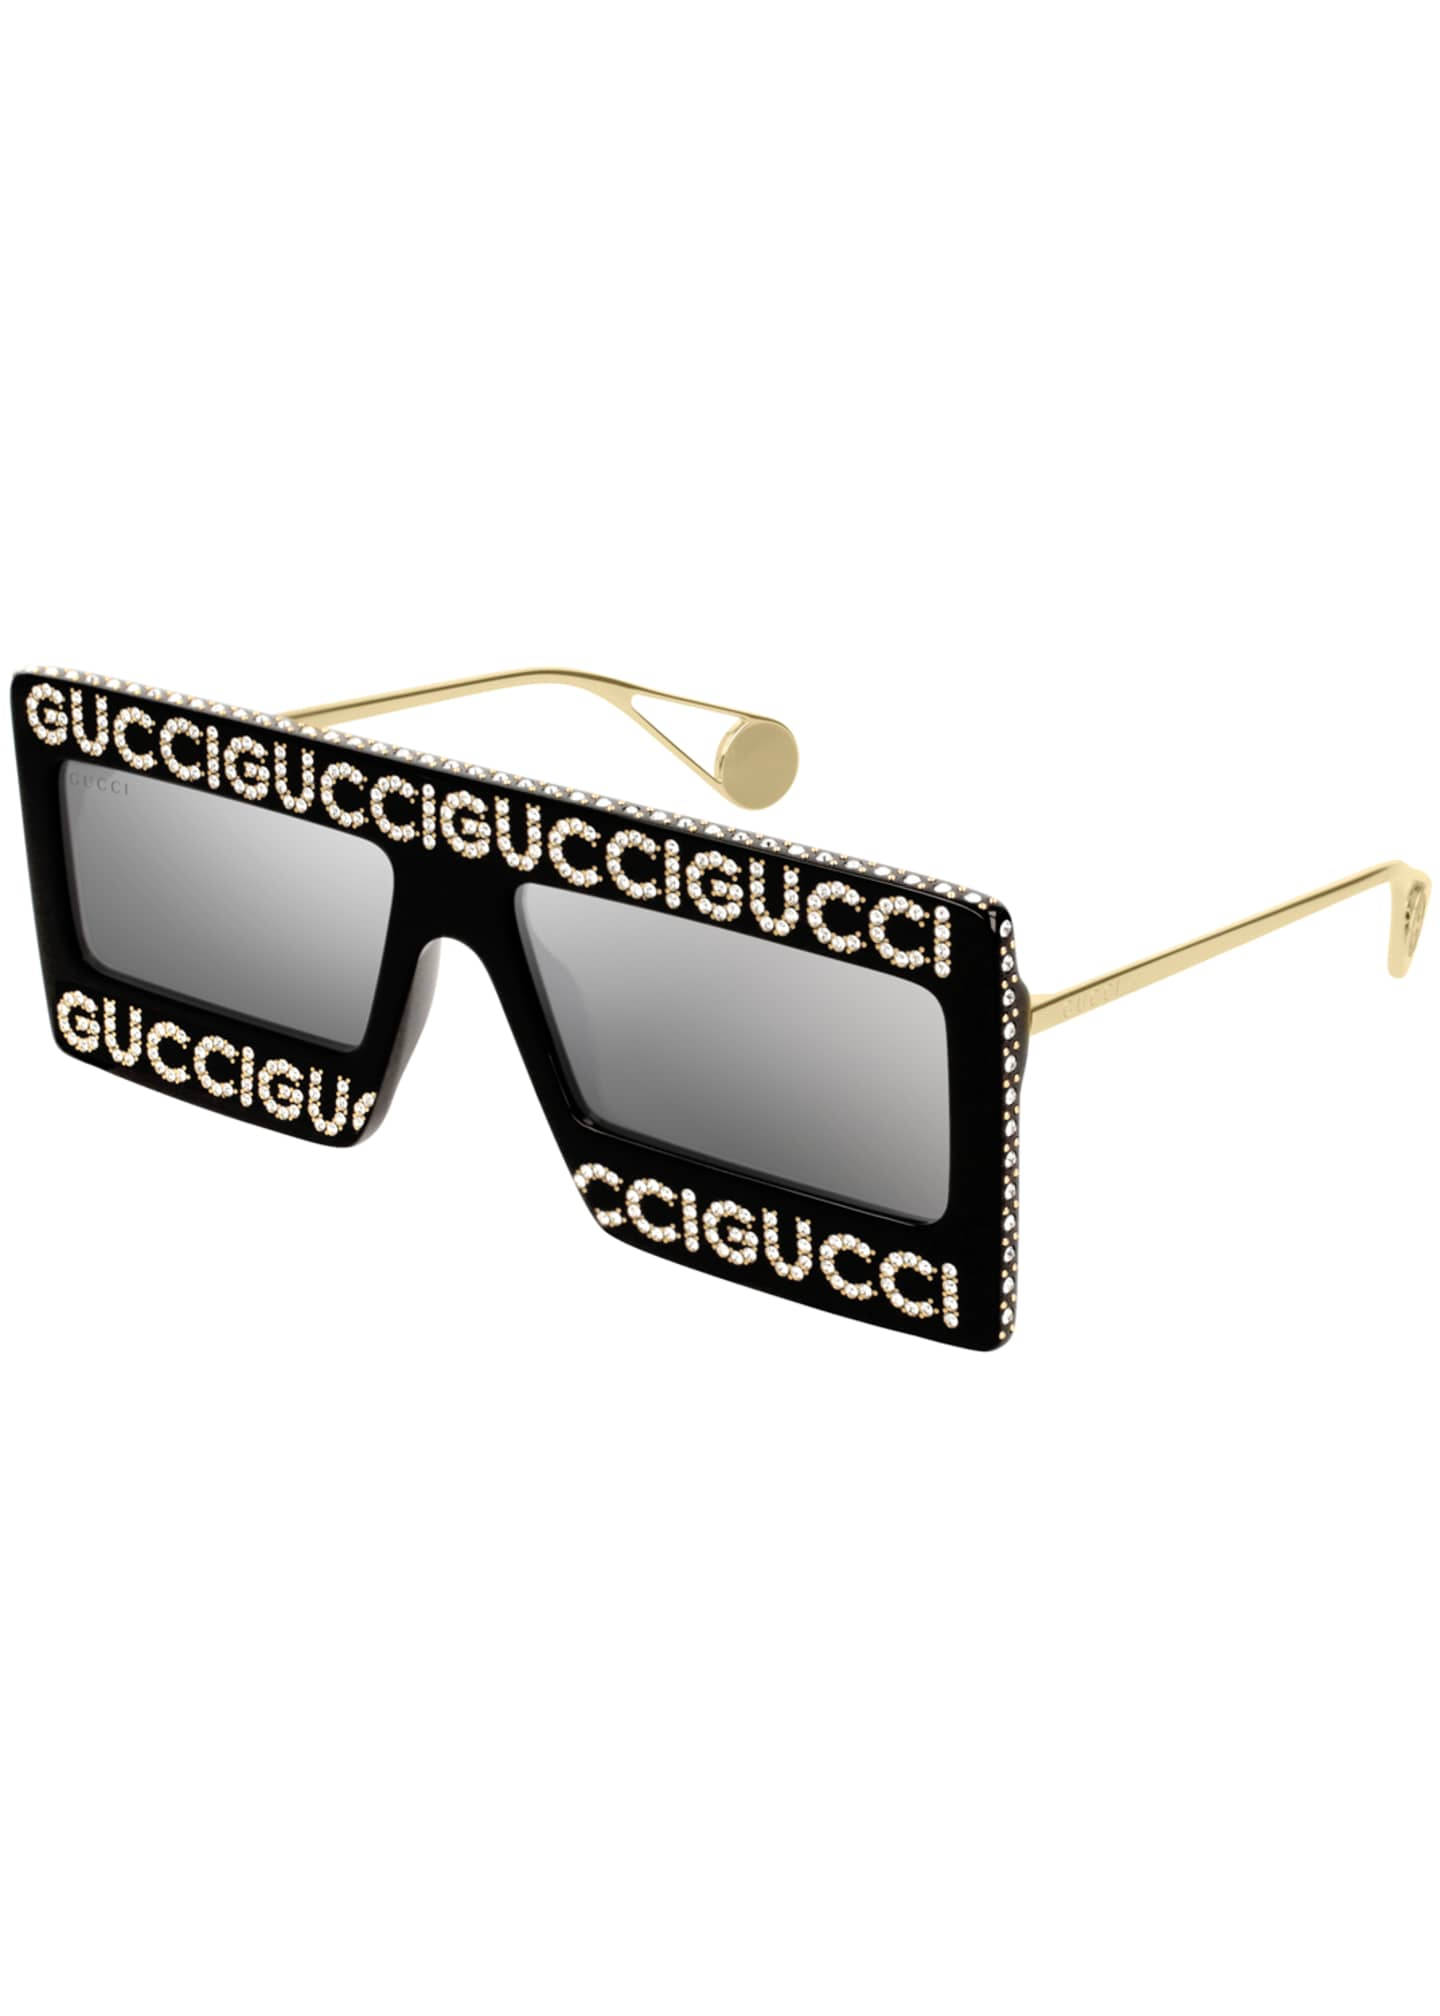 Gucci Crystal Logo Shield Sunglasses